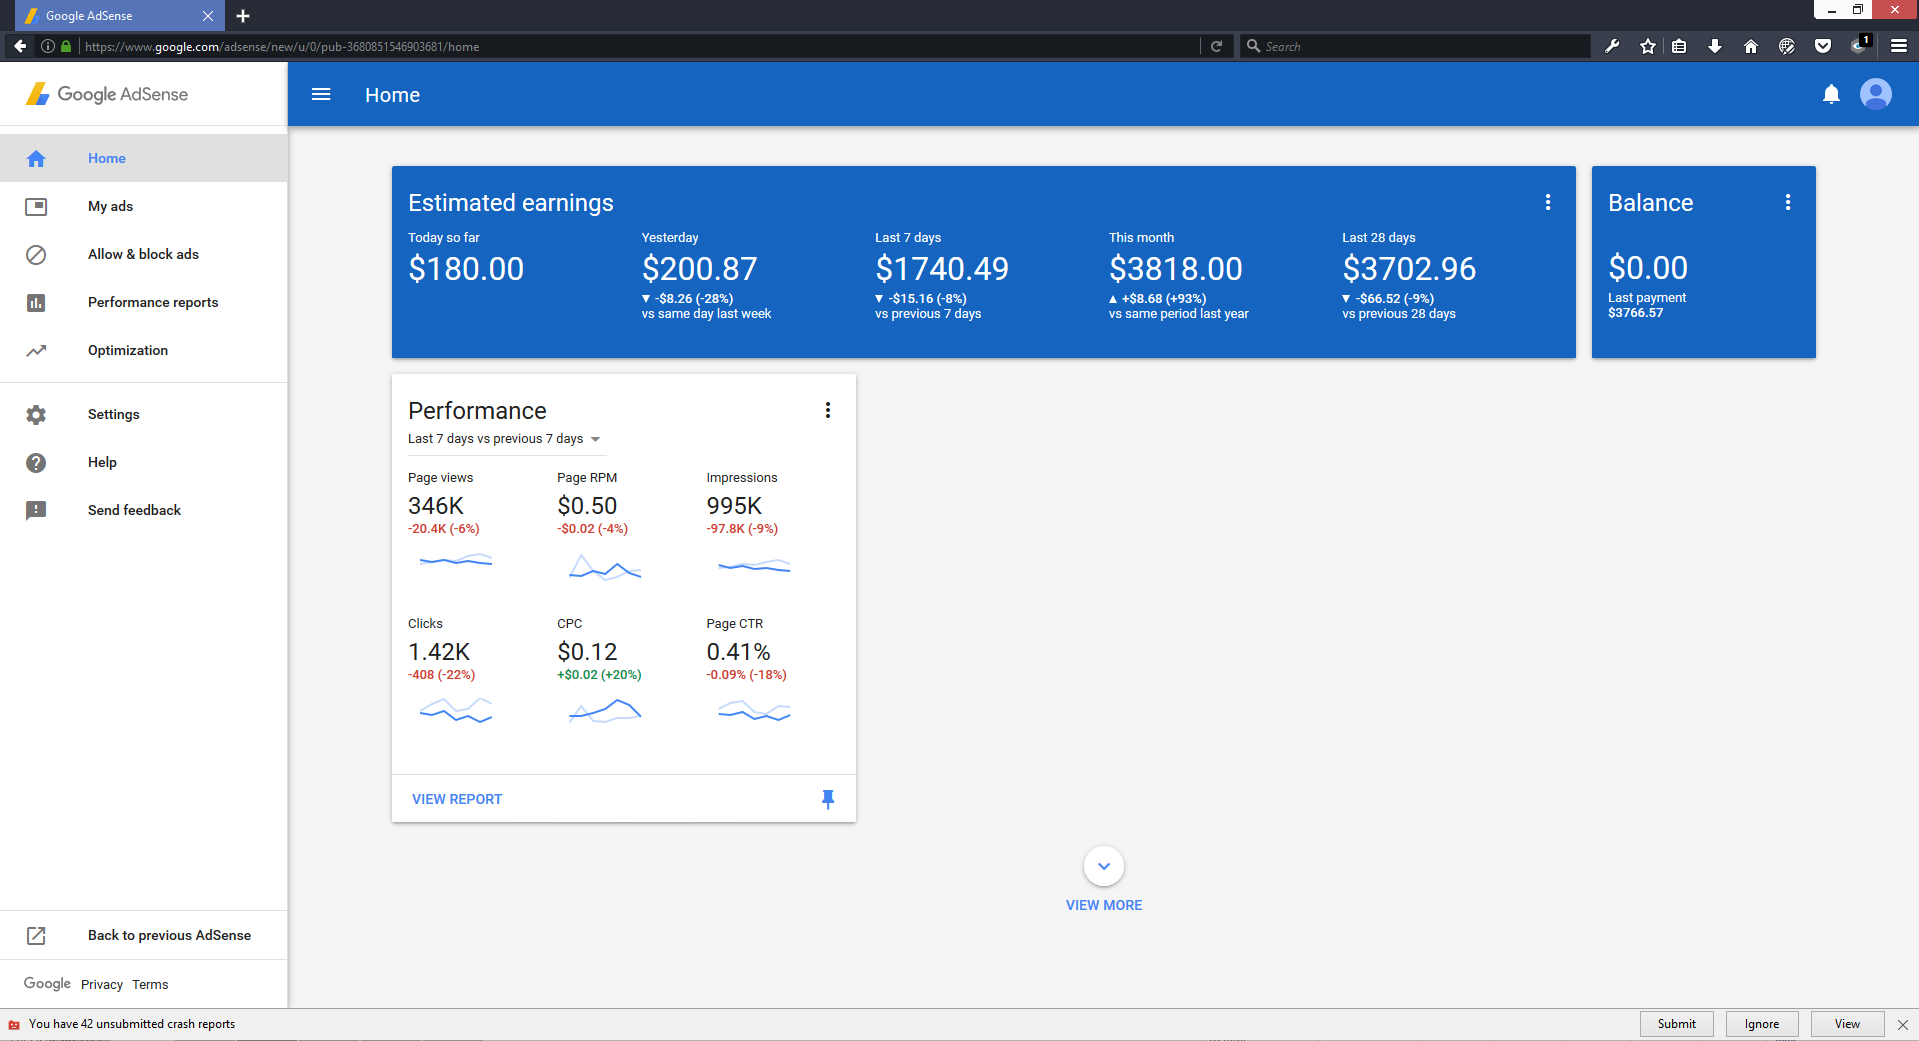 sell method to make $3000 with adsense per month.